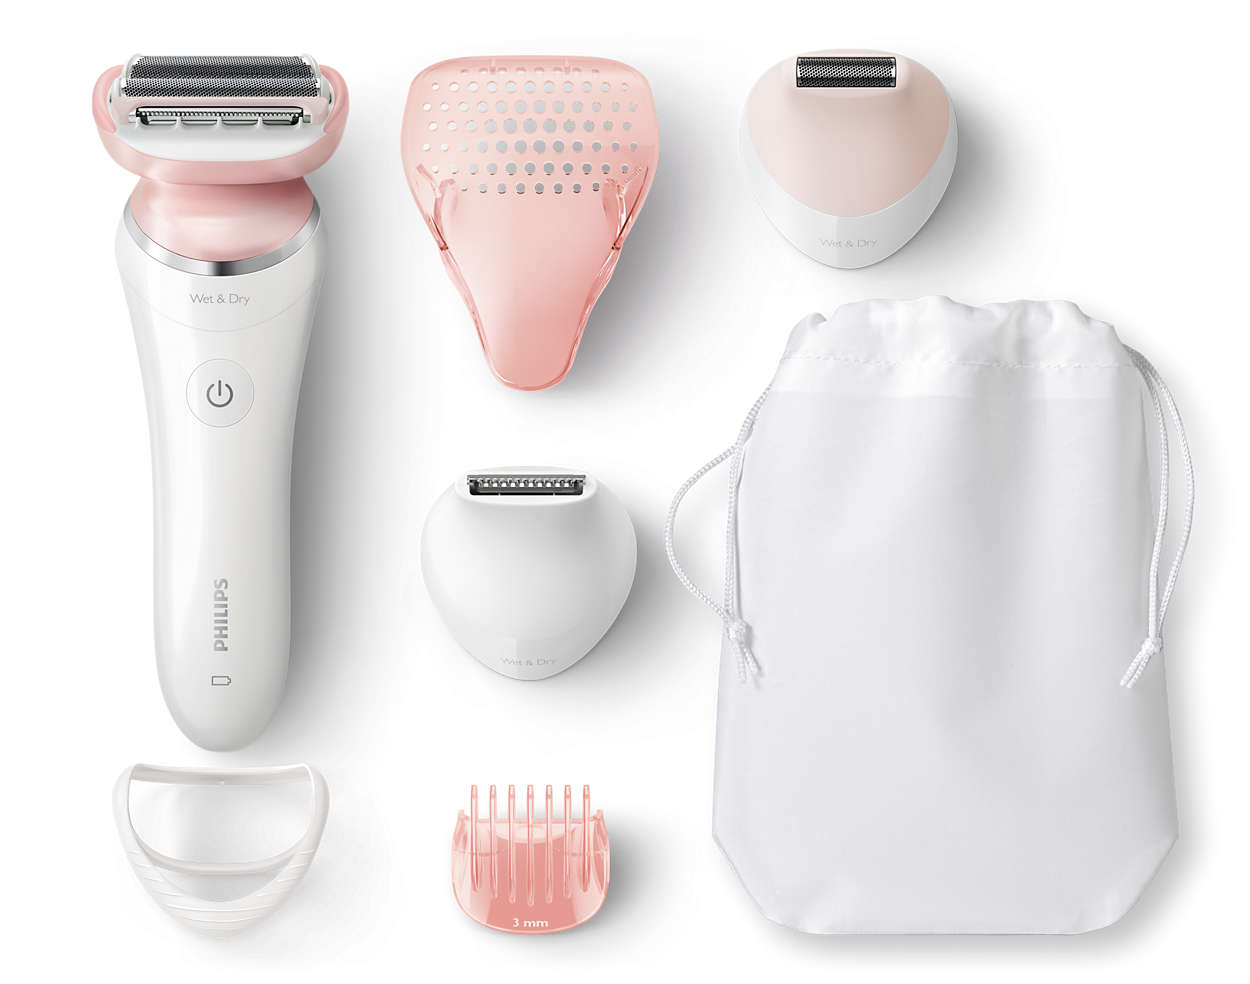 Philips SatinShave Women's Electric Shaver - Best Electric Shavers For Women